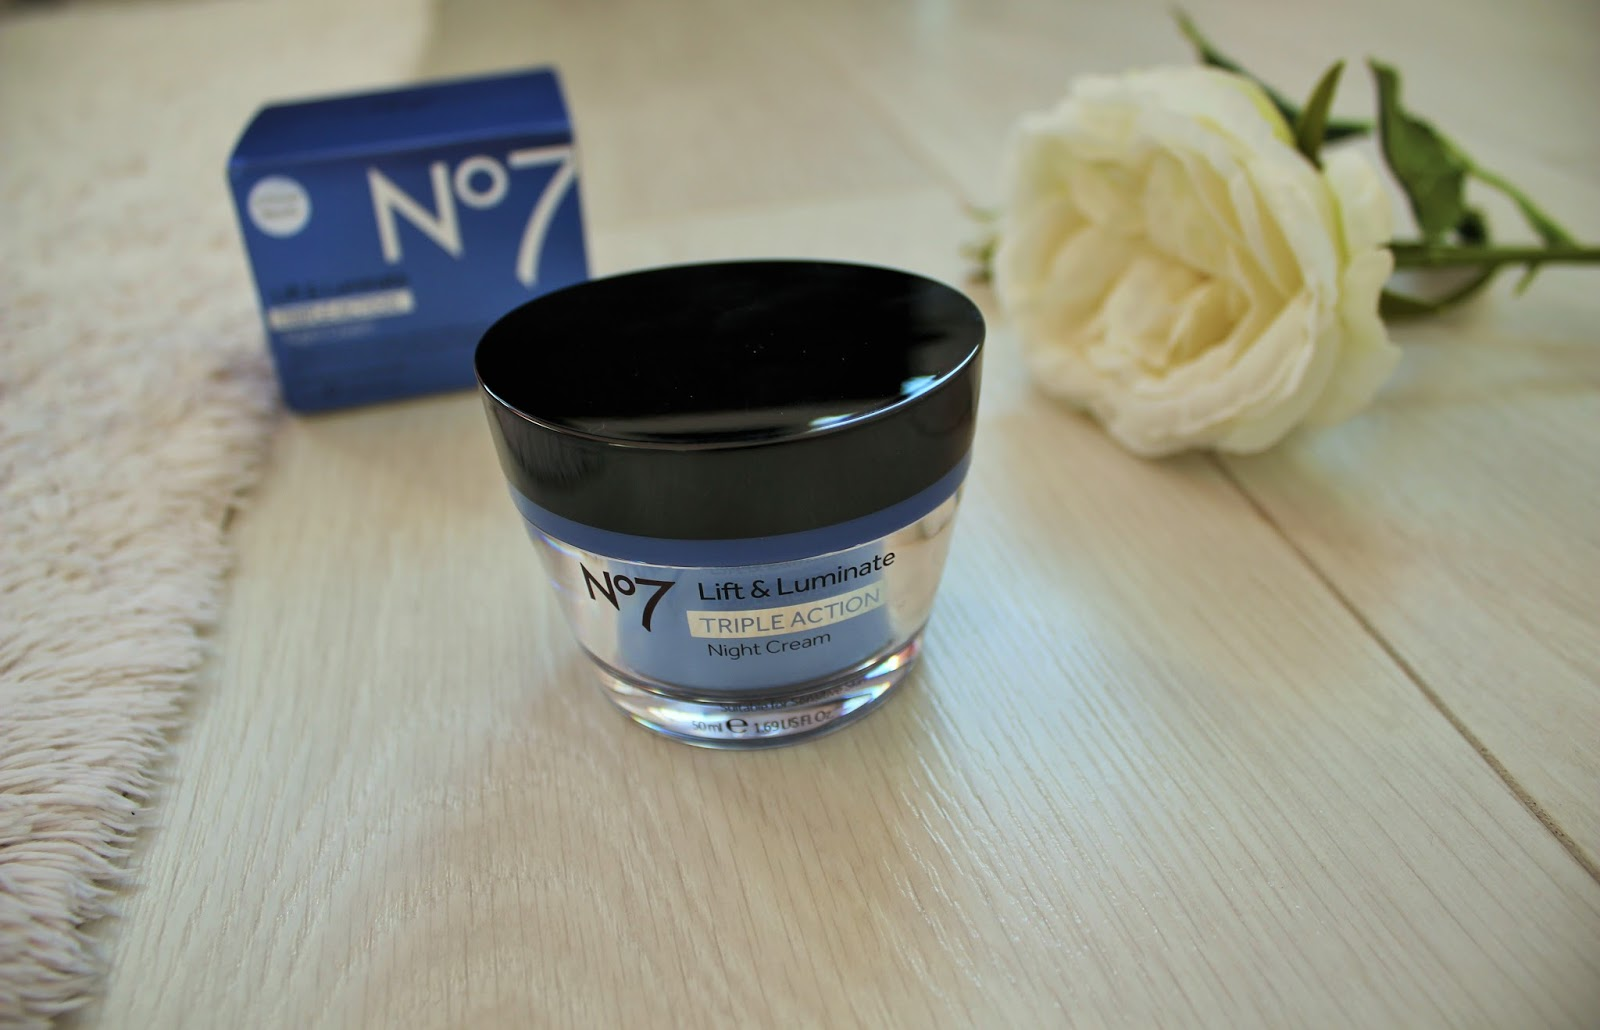 No7 Lift & Luminate Triple Action Range - First Impressions and Giveaway 5